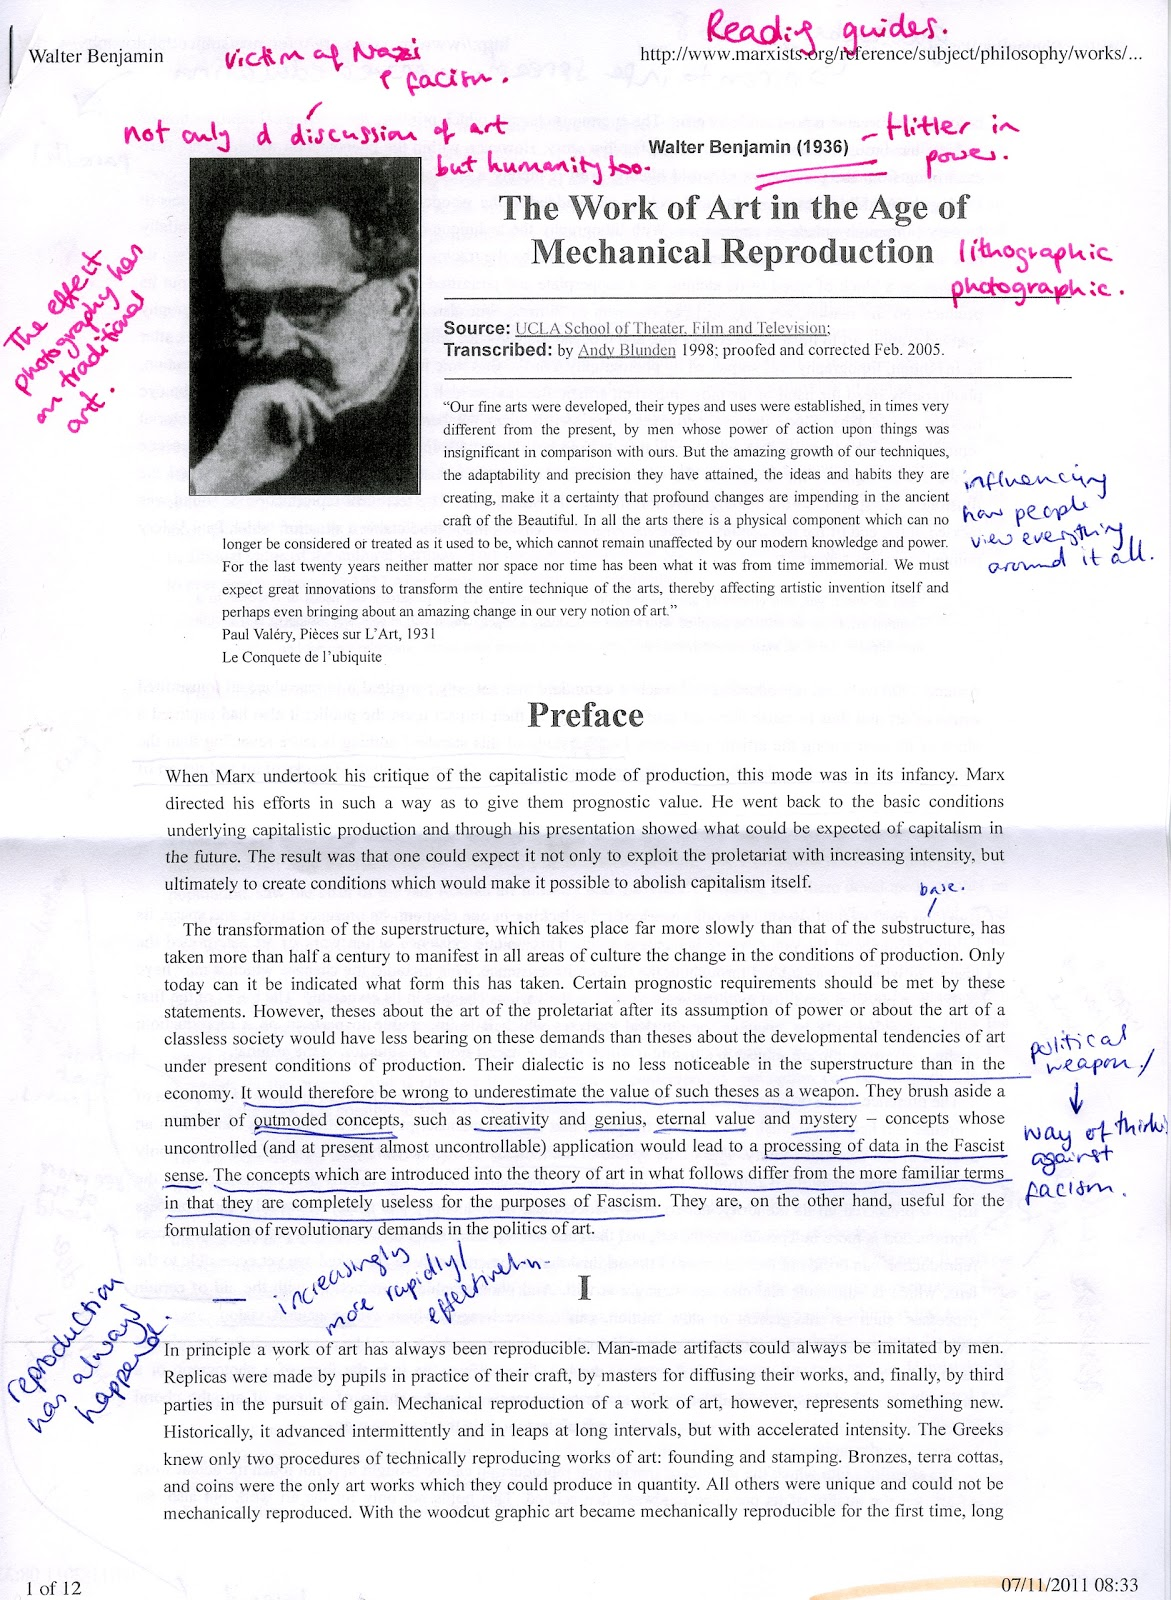 benjamin mechanical reproduction essay Perhaps benjamin's best-known work is 'the work of art in the age of mechanical reproduction' this short piece provides a general history of changes in art in.